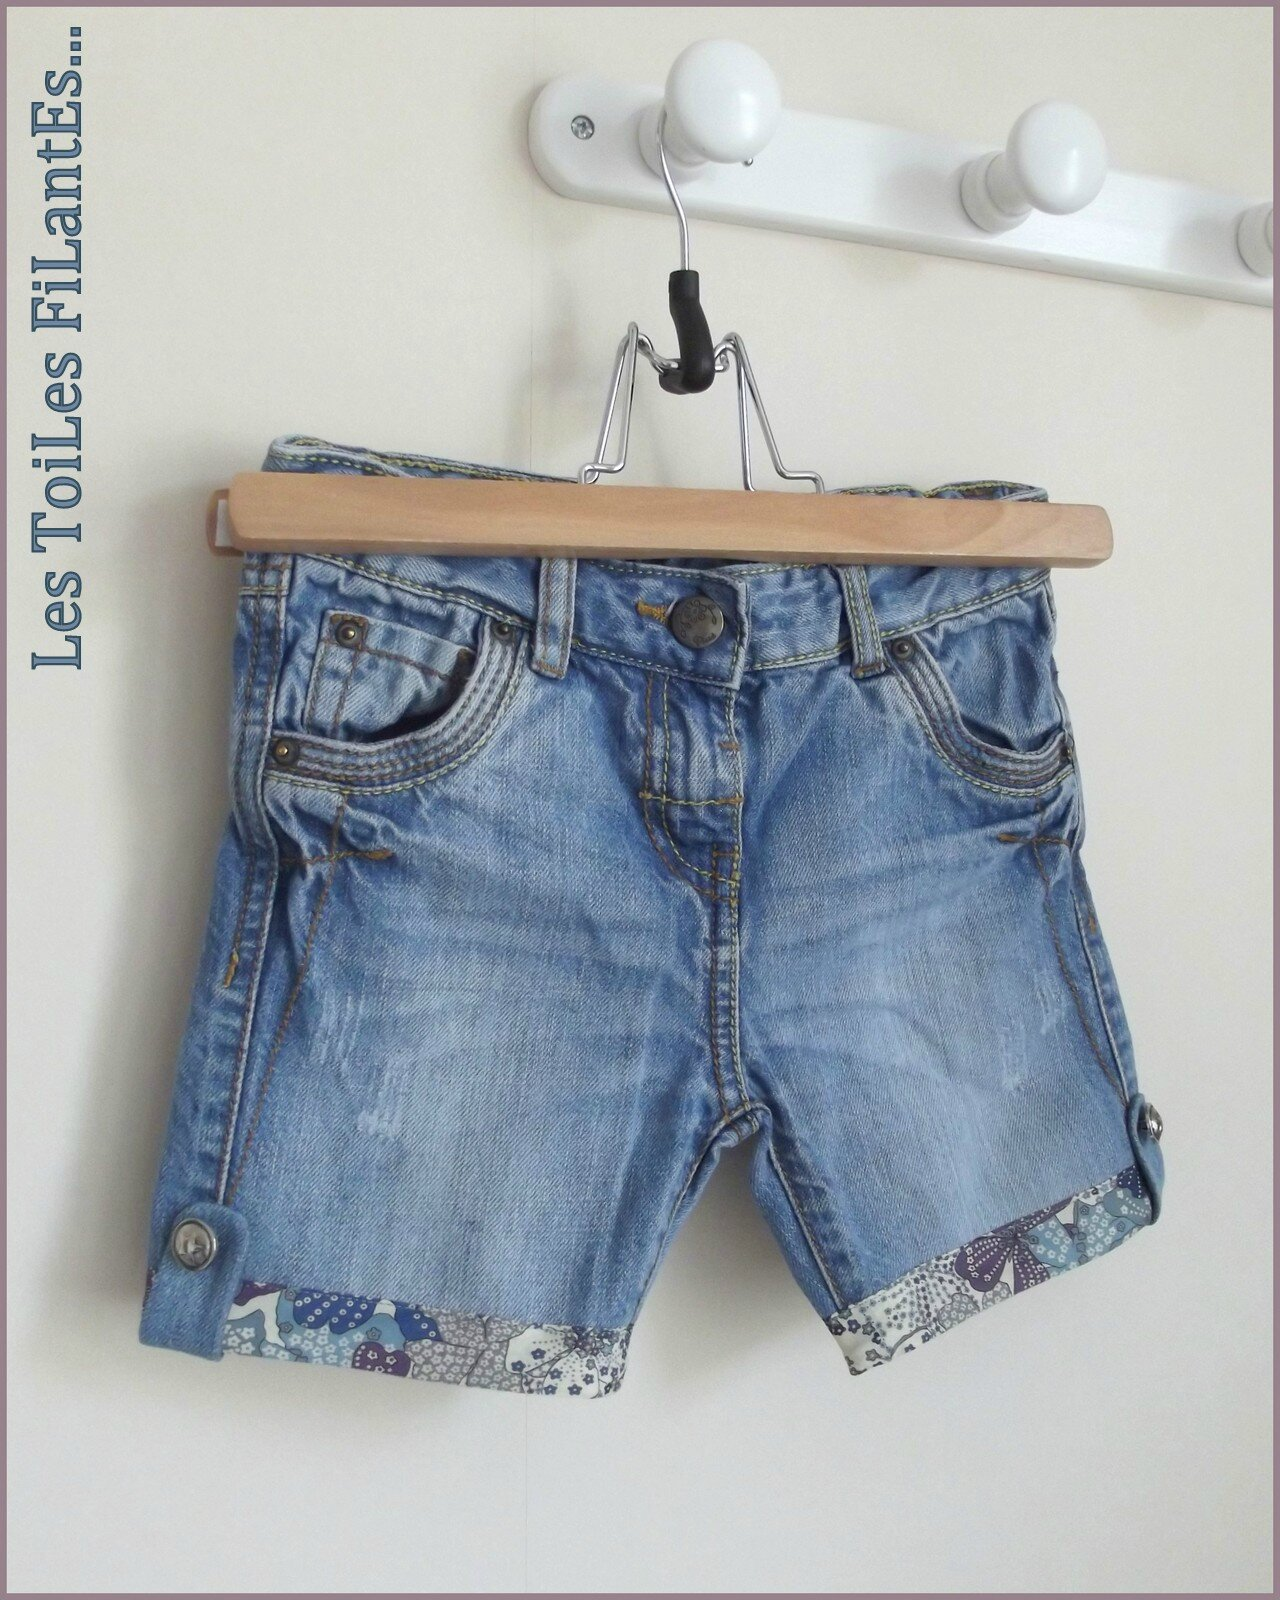 Transformation jeans et tee-shirt assorti Delphine9